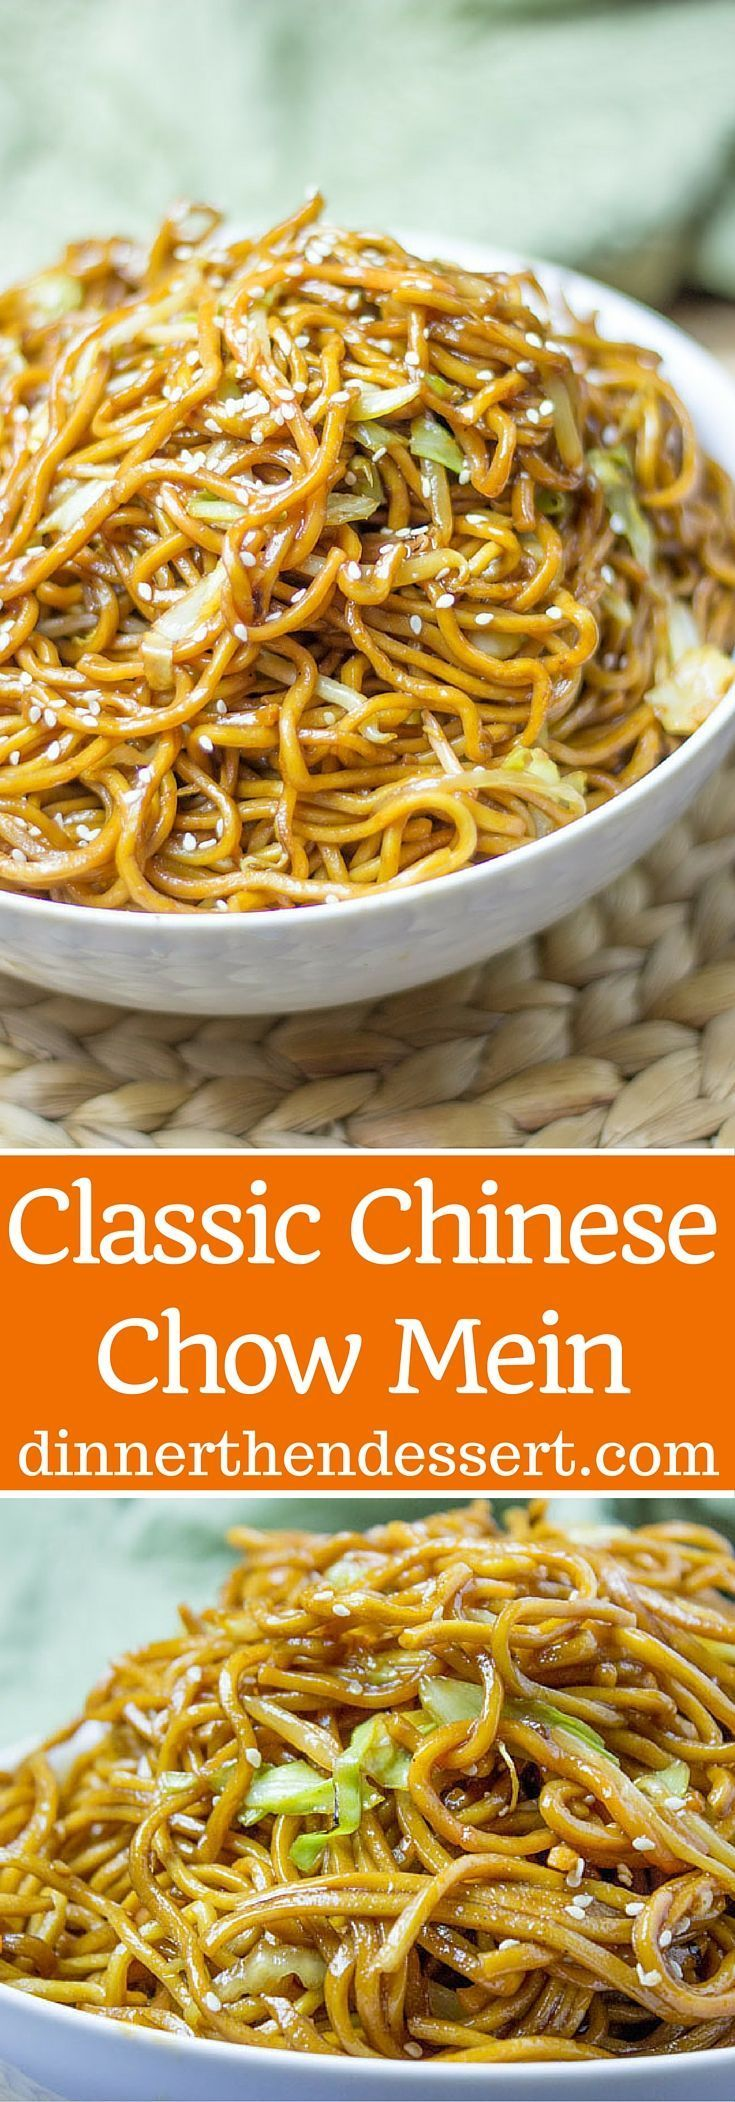 Classic Chinese Chow Mein with authentic ingredients and easy ingredient swaps to